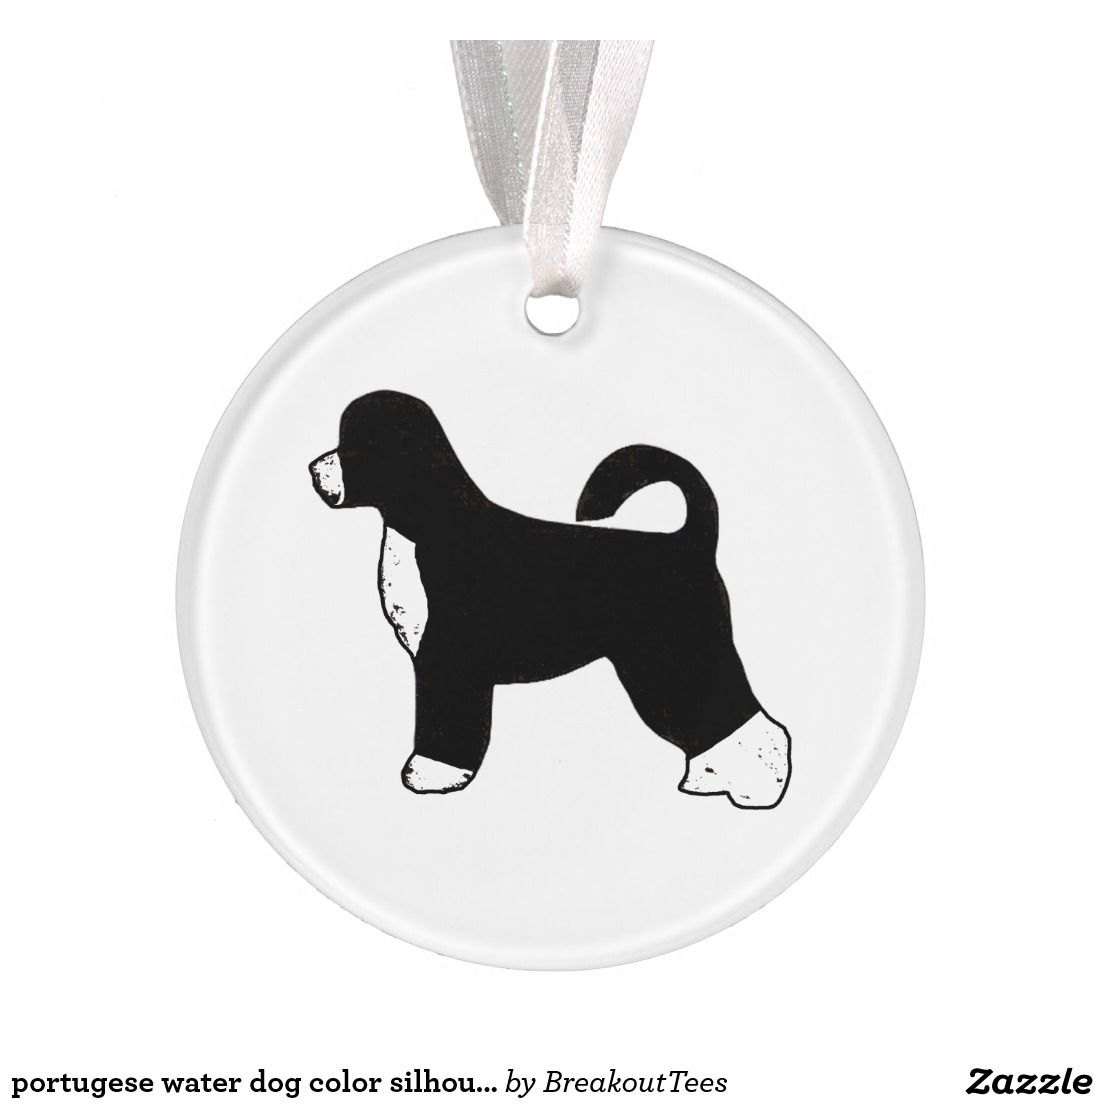 Portugese water dog color silhouette.png ornament | Pinterest | Dog ...